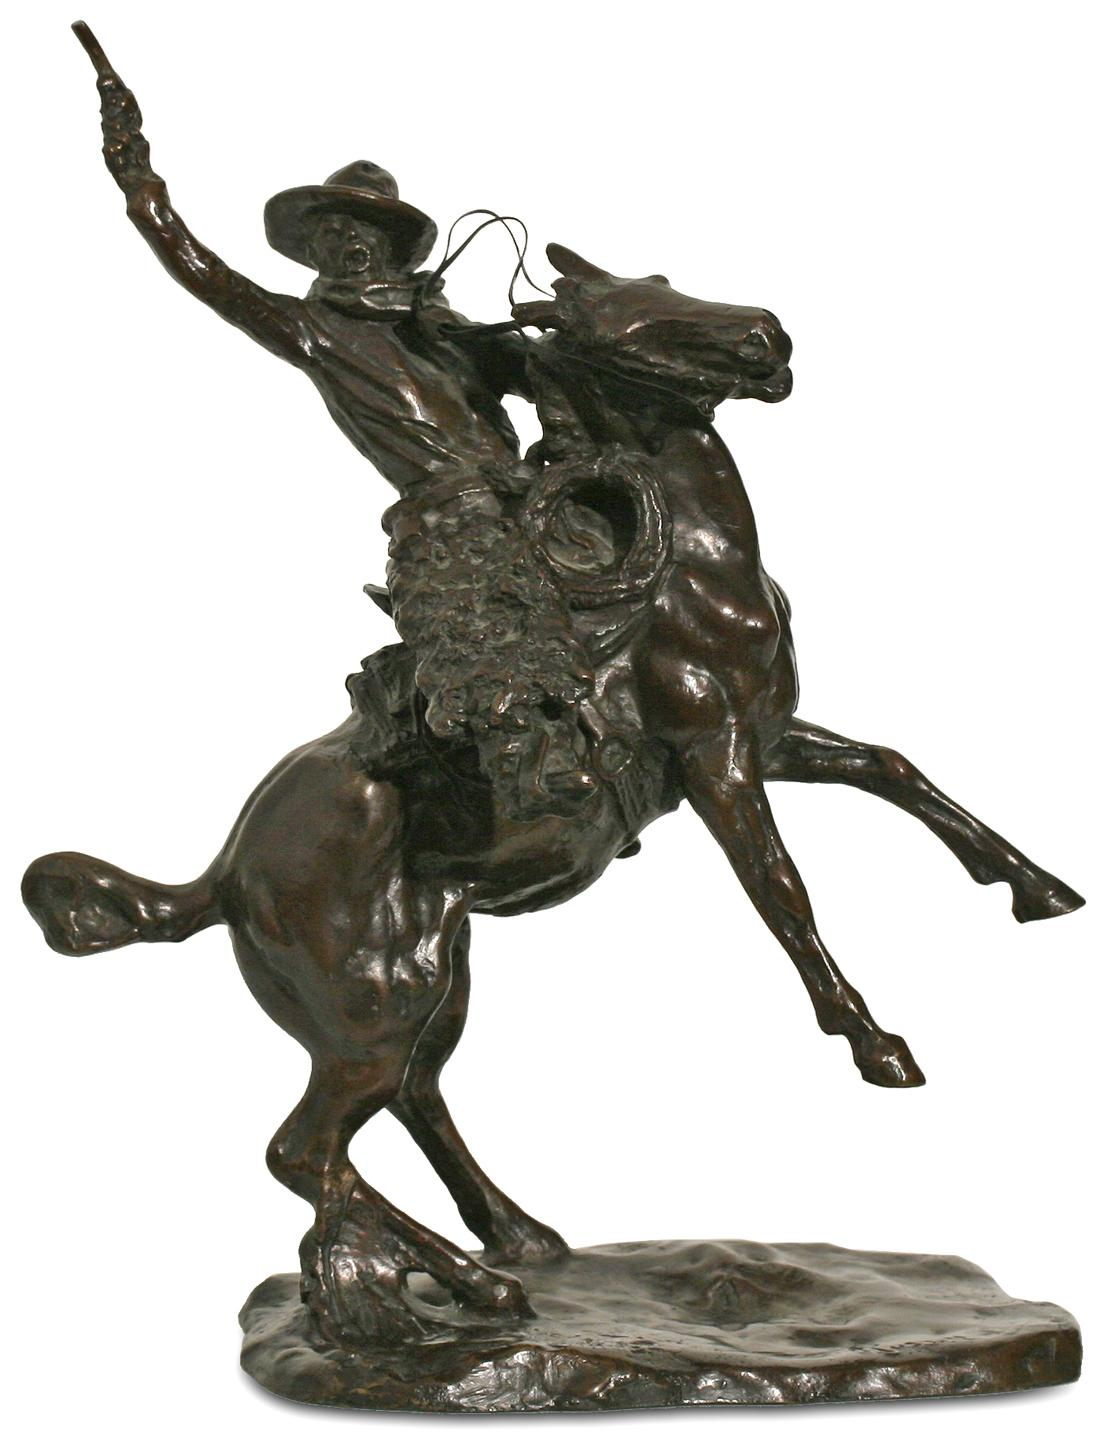 Russell Sculptor Charles M